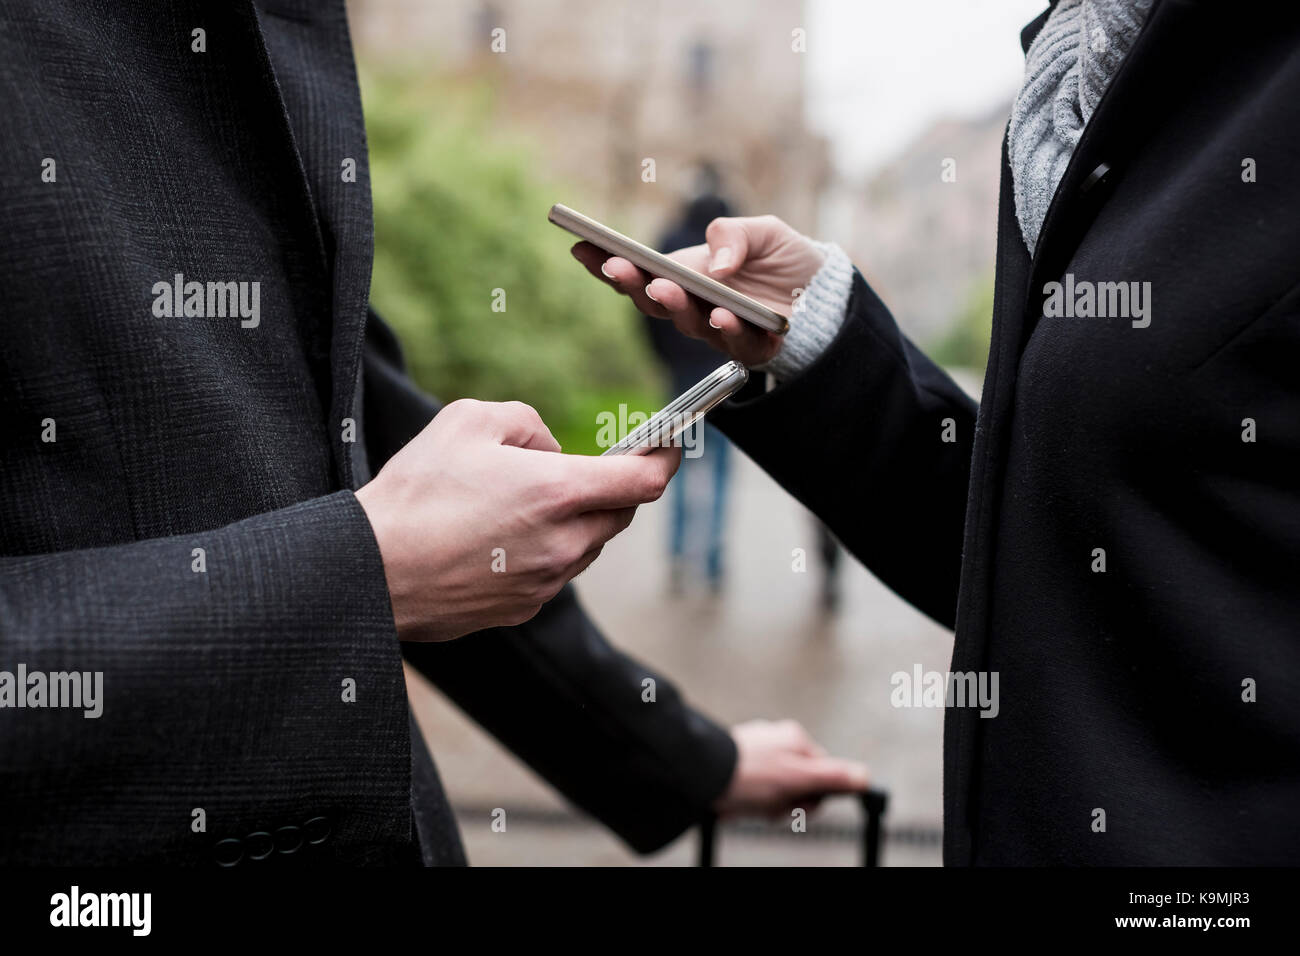 Business people meets in the city. Milan, Italy. - Stock Image